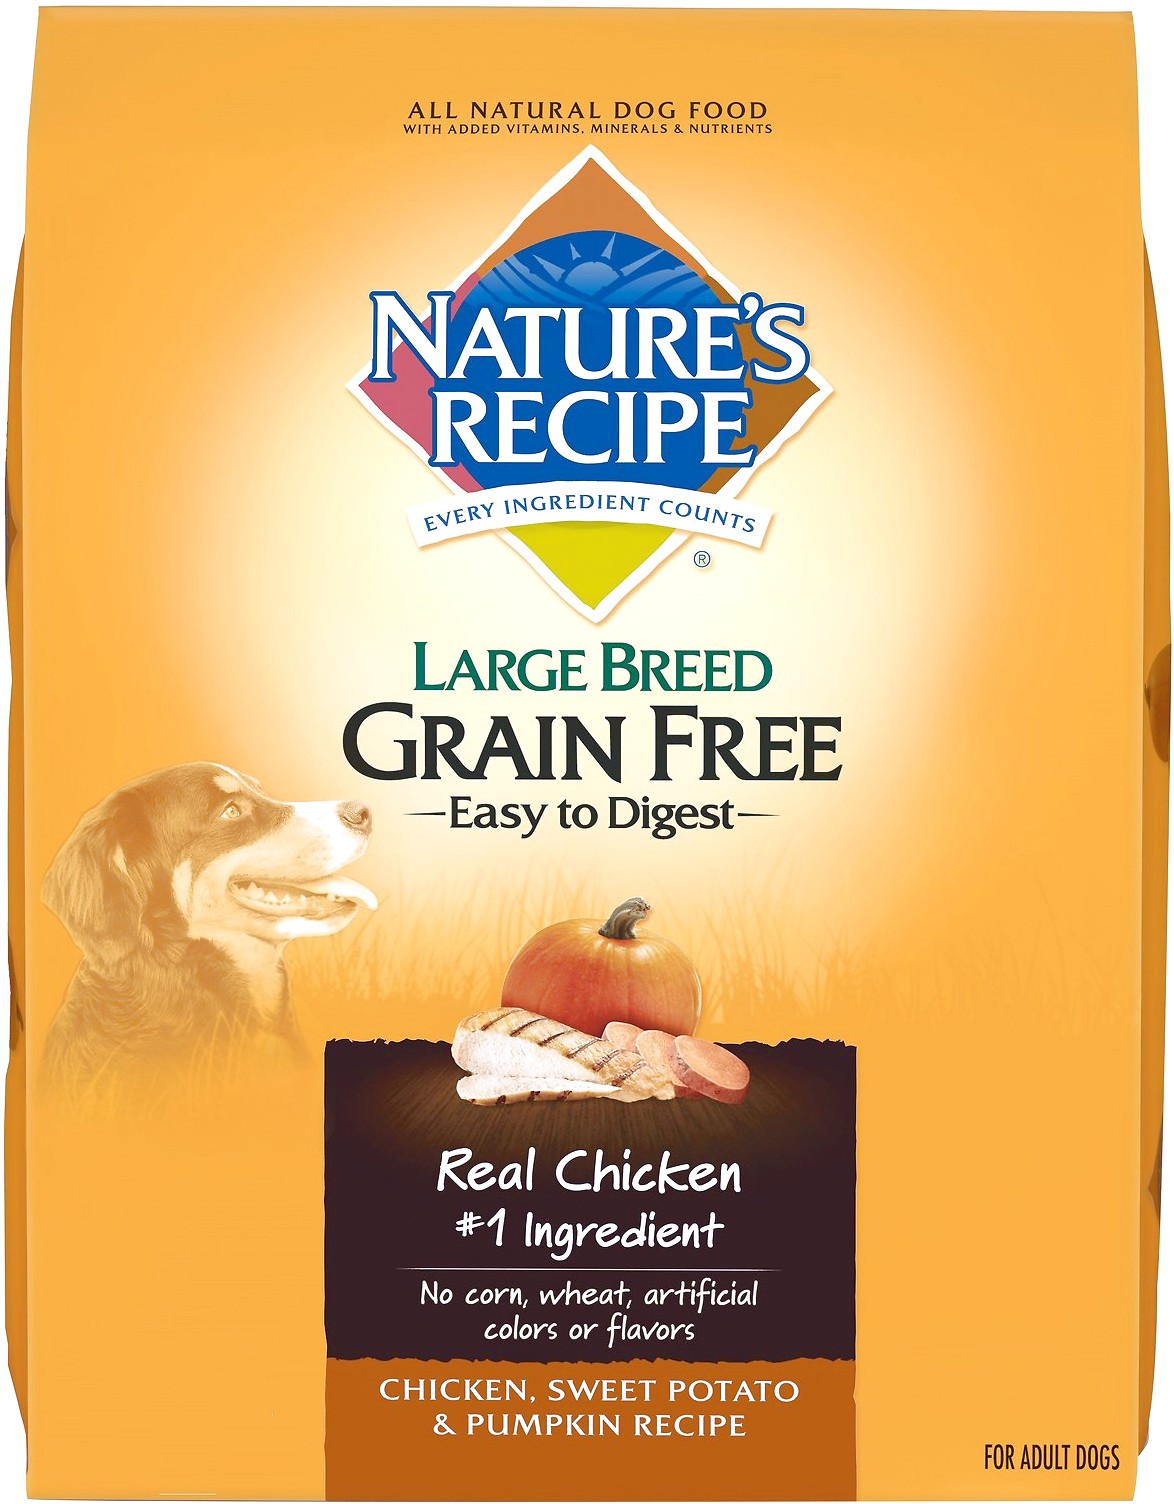 what is the best grain free dog food for large breeds